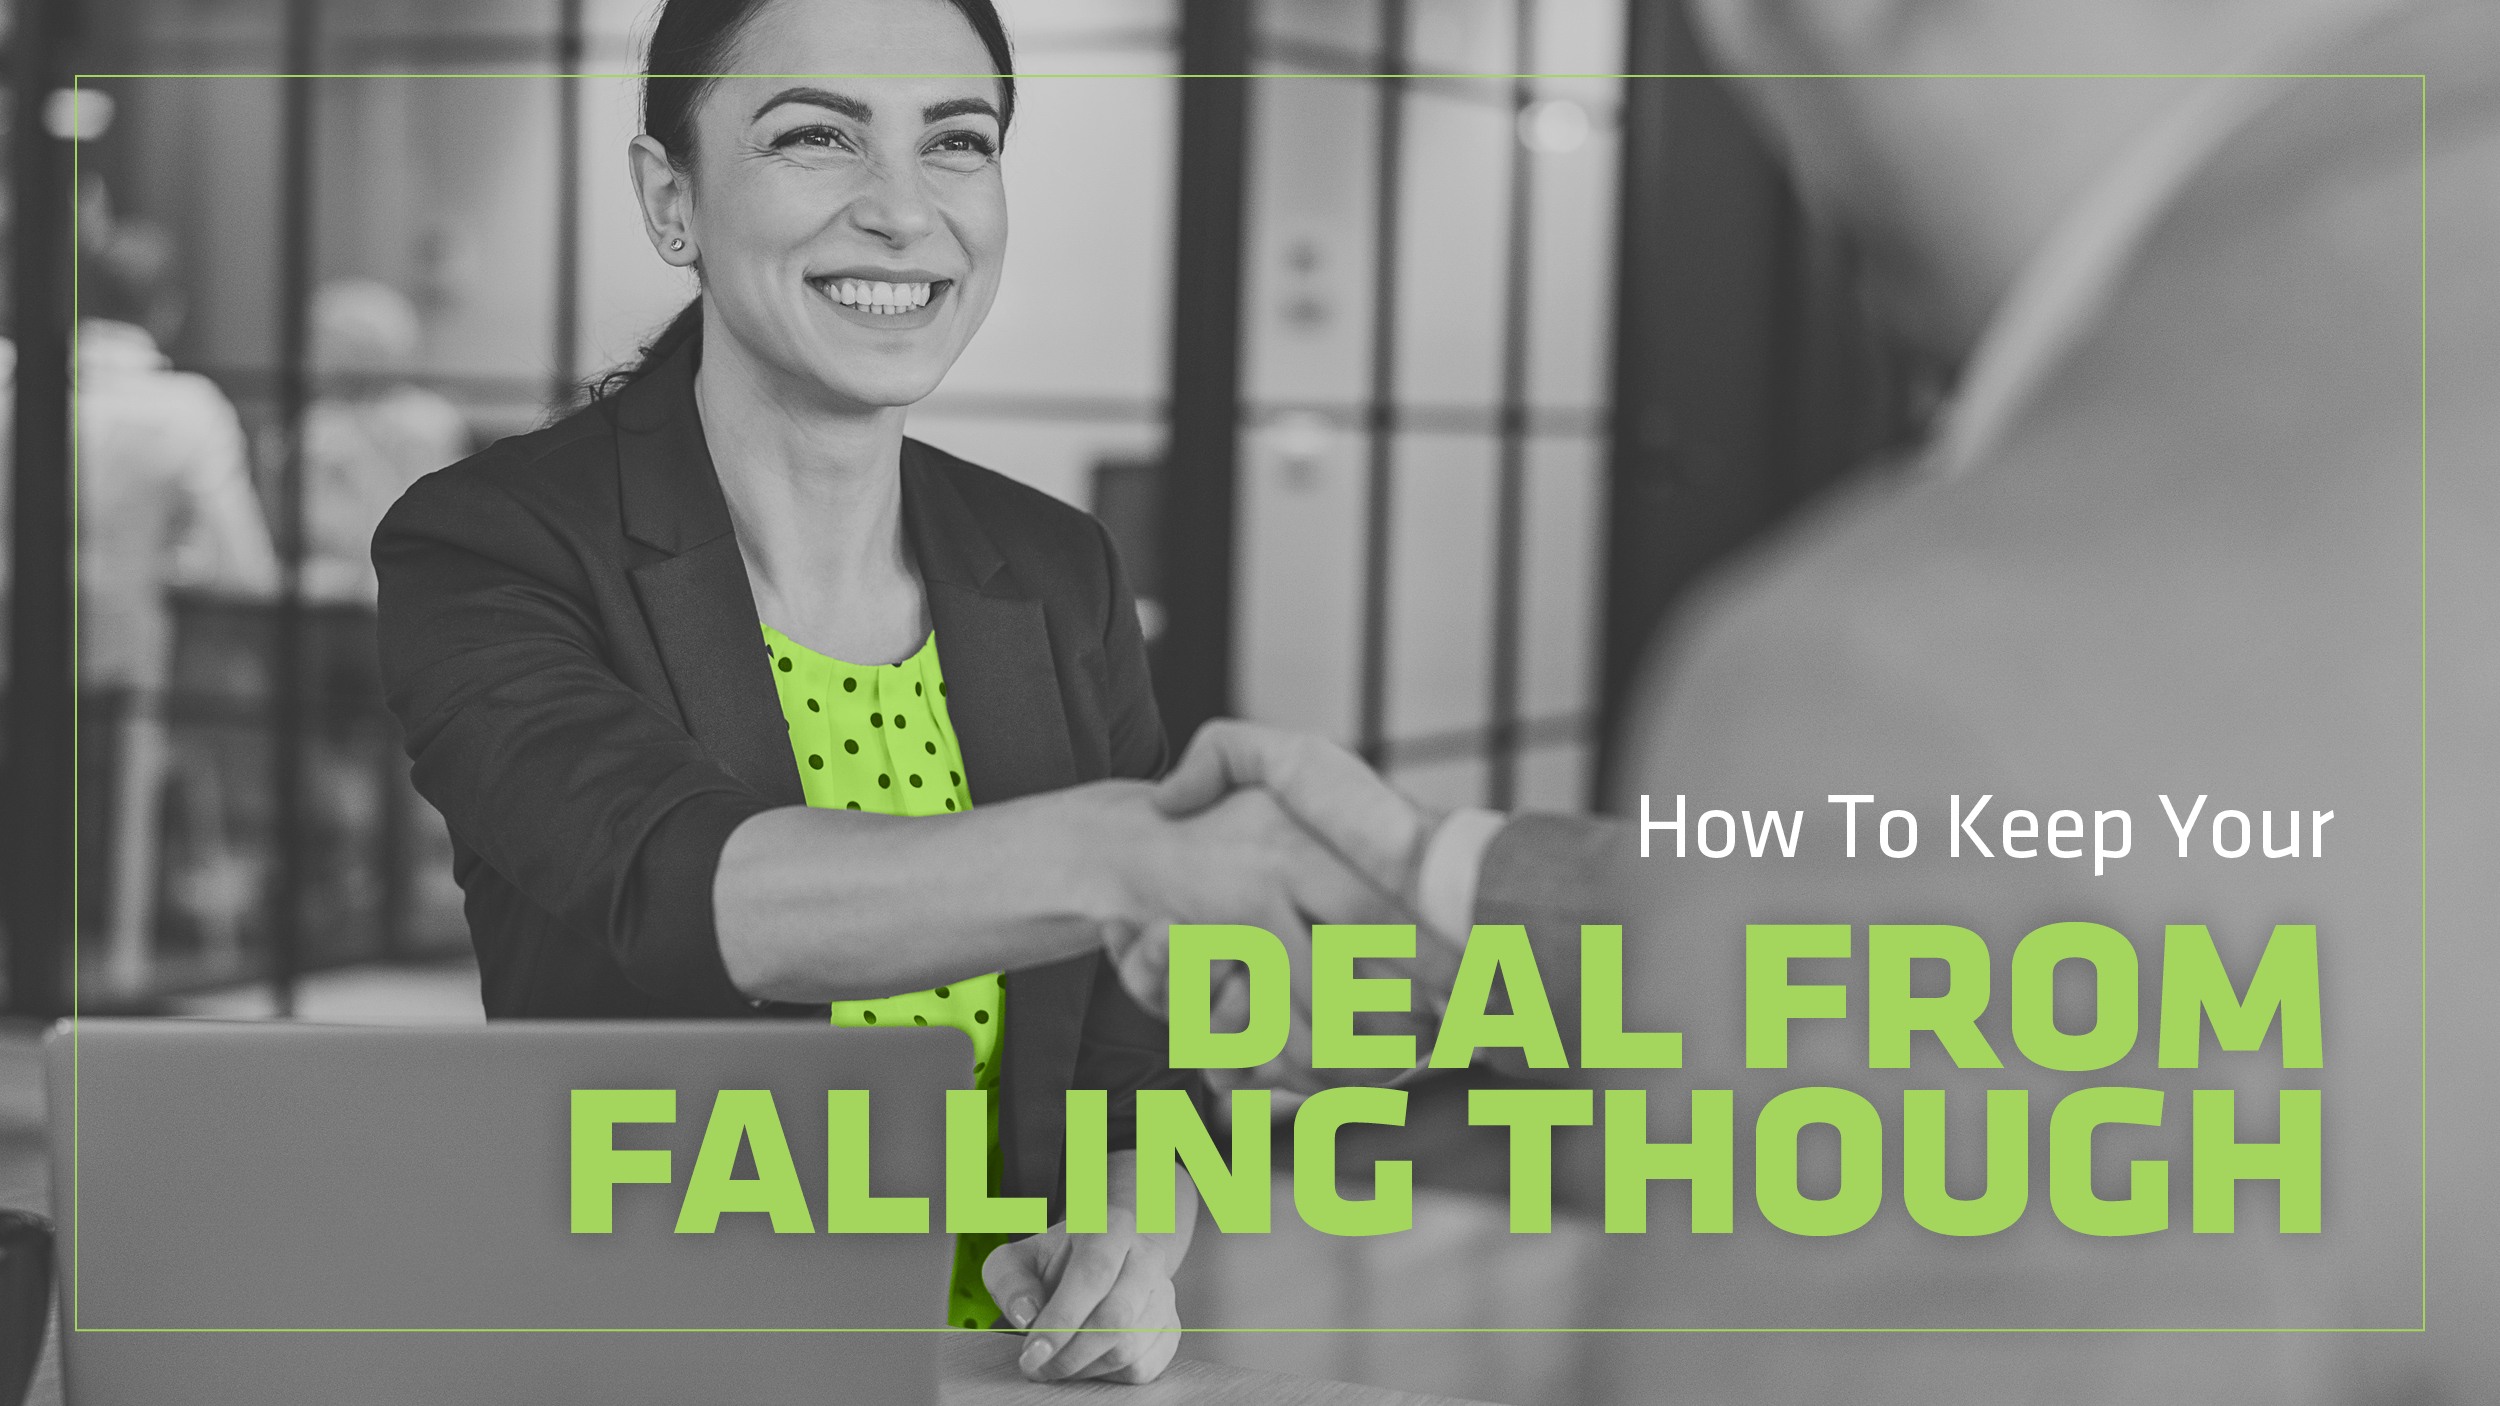 What Defects Can Affect Transfer of Title - and How Can You Keep Your Deal From Falling Though?